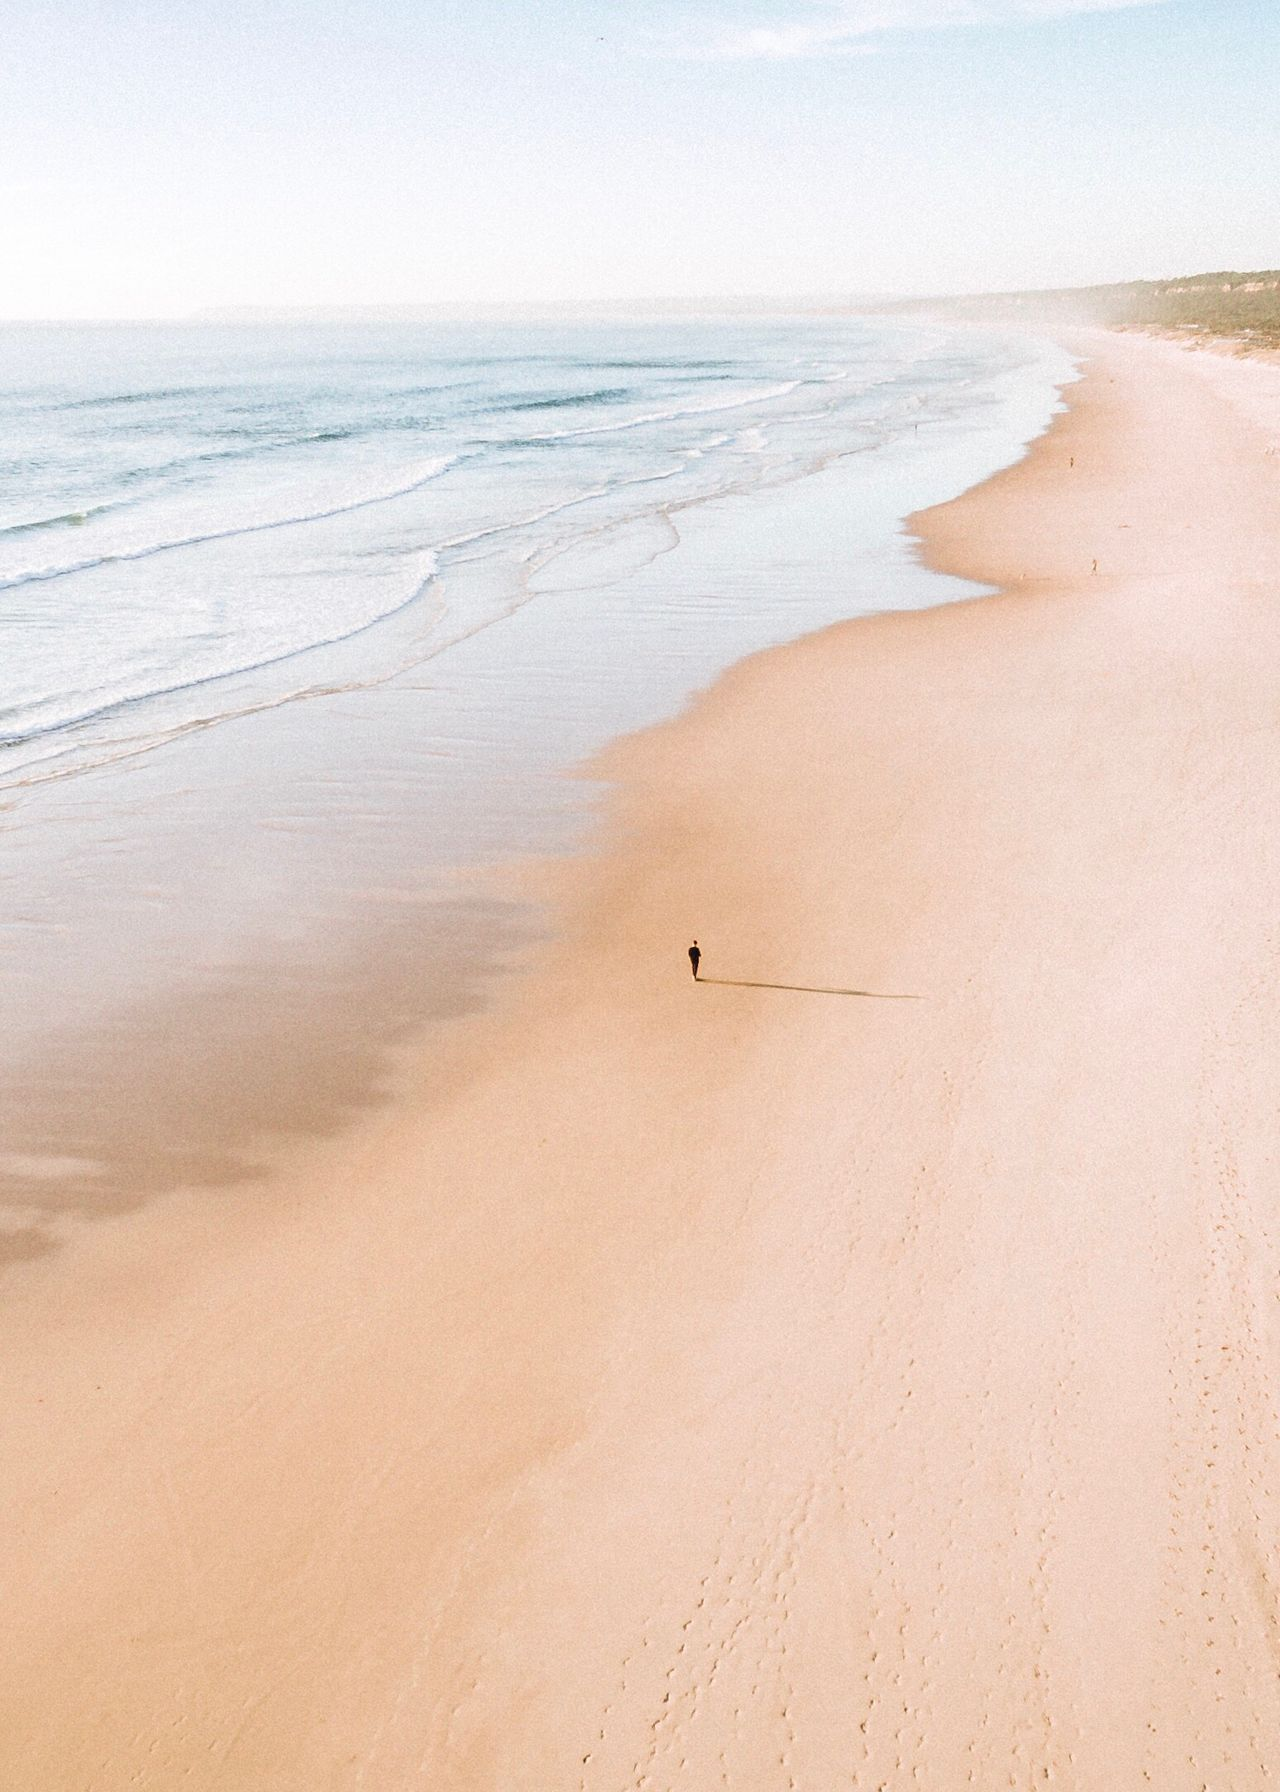 Sand Beach Nature Sea Horizon Over Water Beauty In Nature Day Clear Sky Tranquility Outdoors Scenics One Person Wave Water Sand Dune EyeEm Best Shots EyeEm Gallery EyeEm EyeEmBestPics Flying High Live For The Story